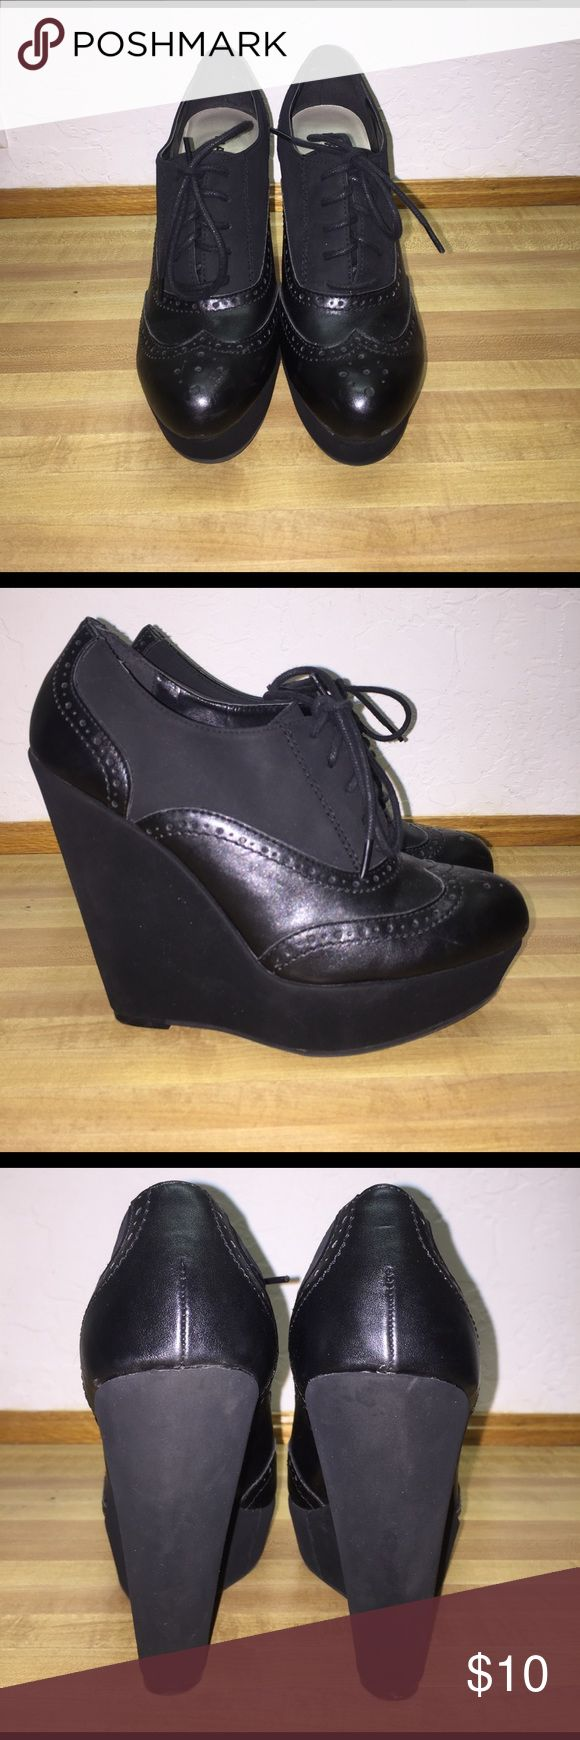 "Black oxford wedges 5"" with approx 1.5"" platform Shoes Wedges"